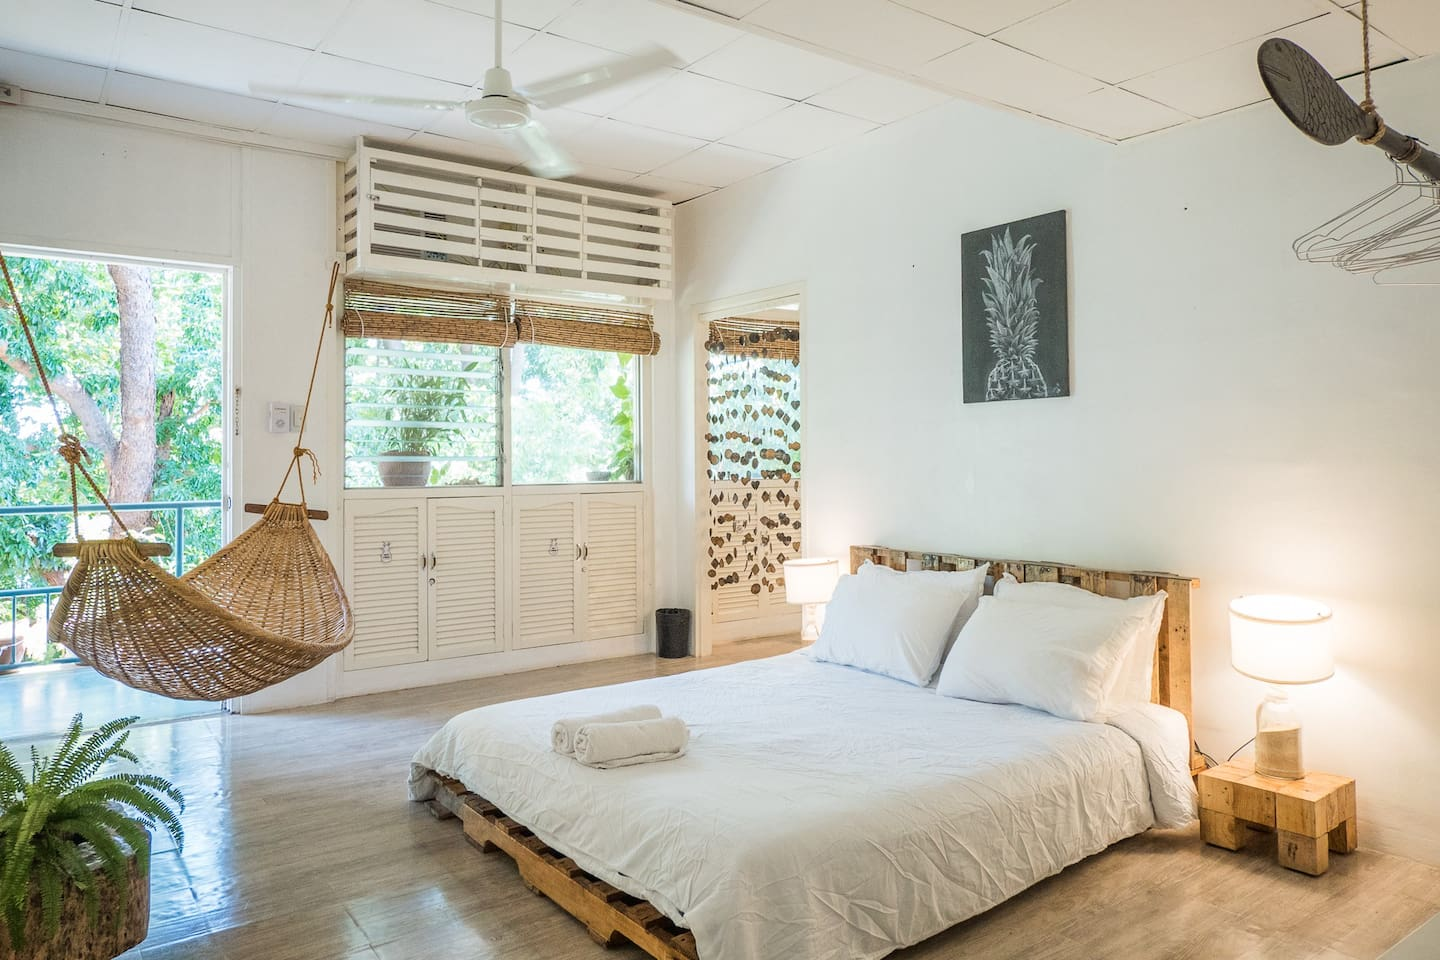 Our Ocean Nest is a small studio good for 4 guests. Pictured here is our super comfy queen bed